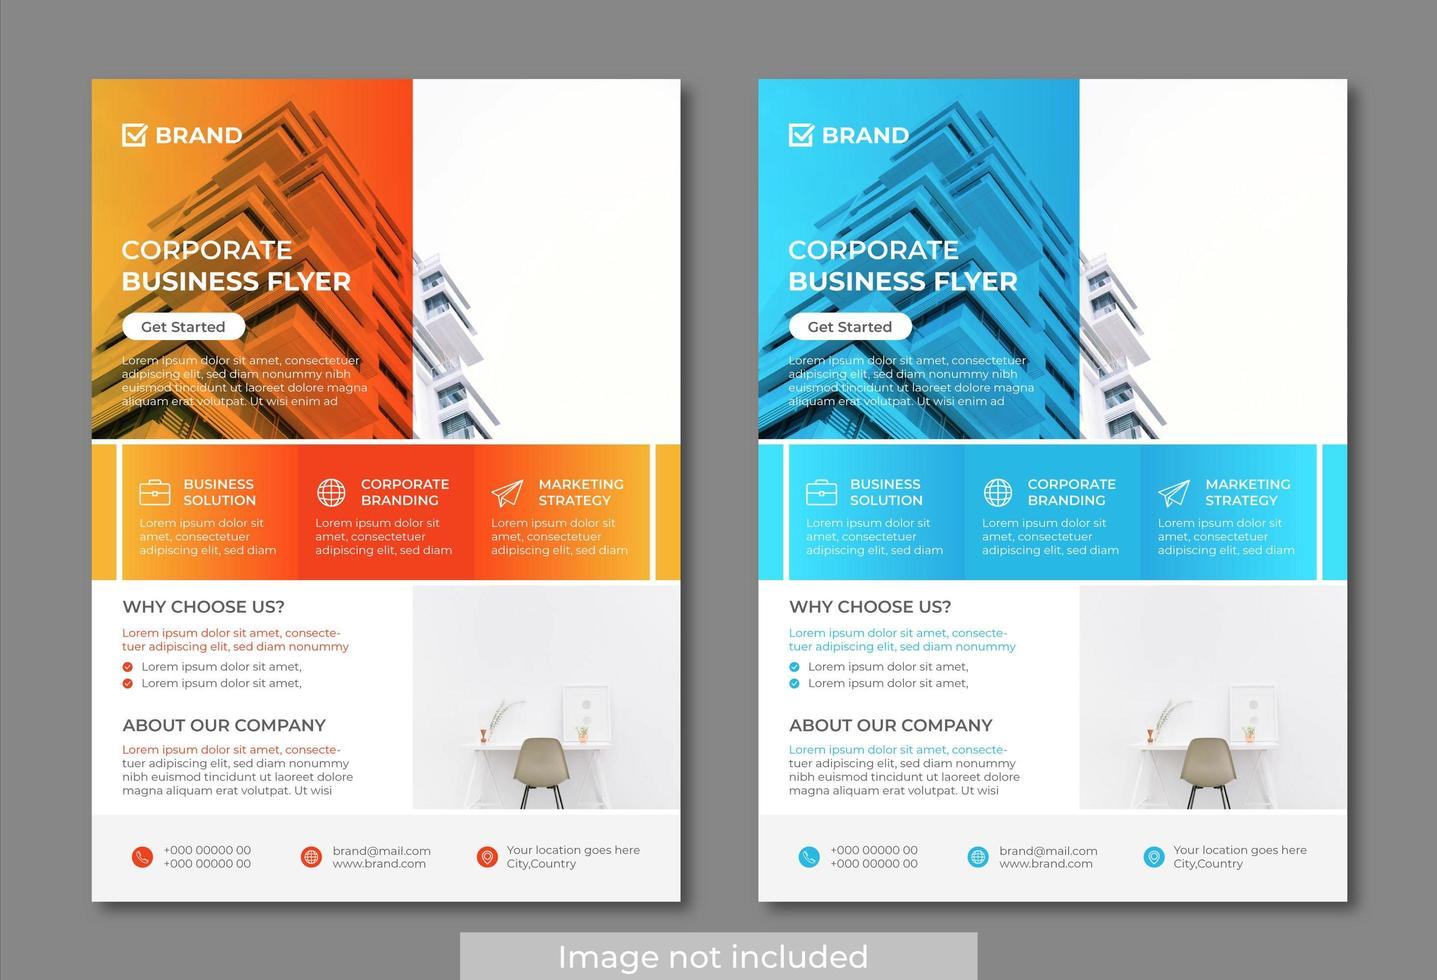 009 Incredible Free Download Flyer Template Image  Templates Blank Leaflet Word PsdFull